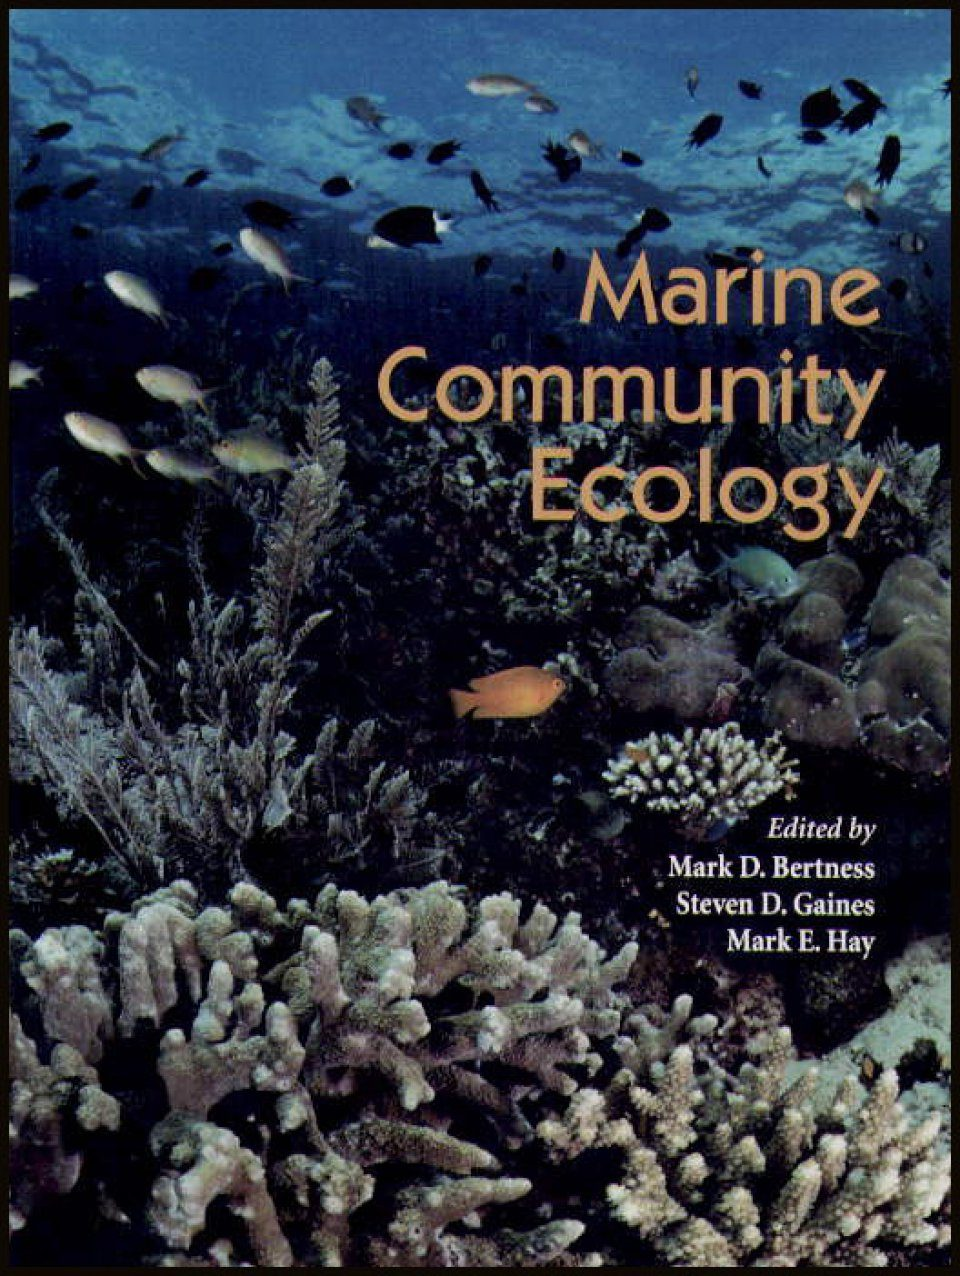 Marine Community Ecology